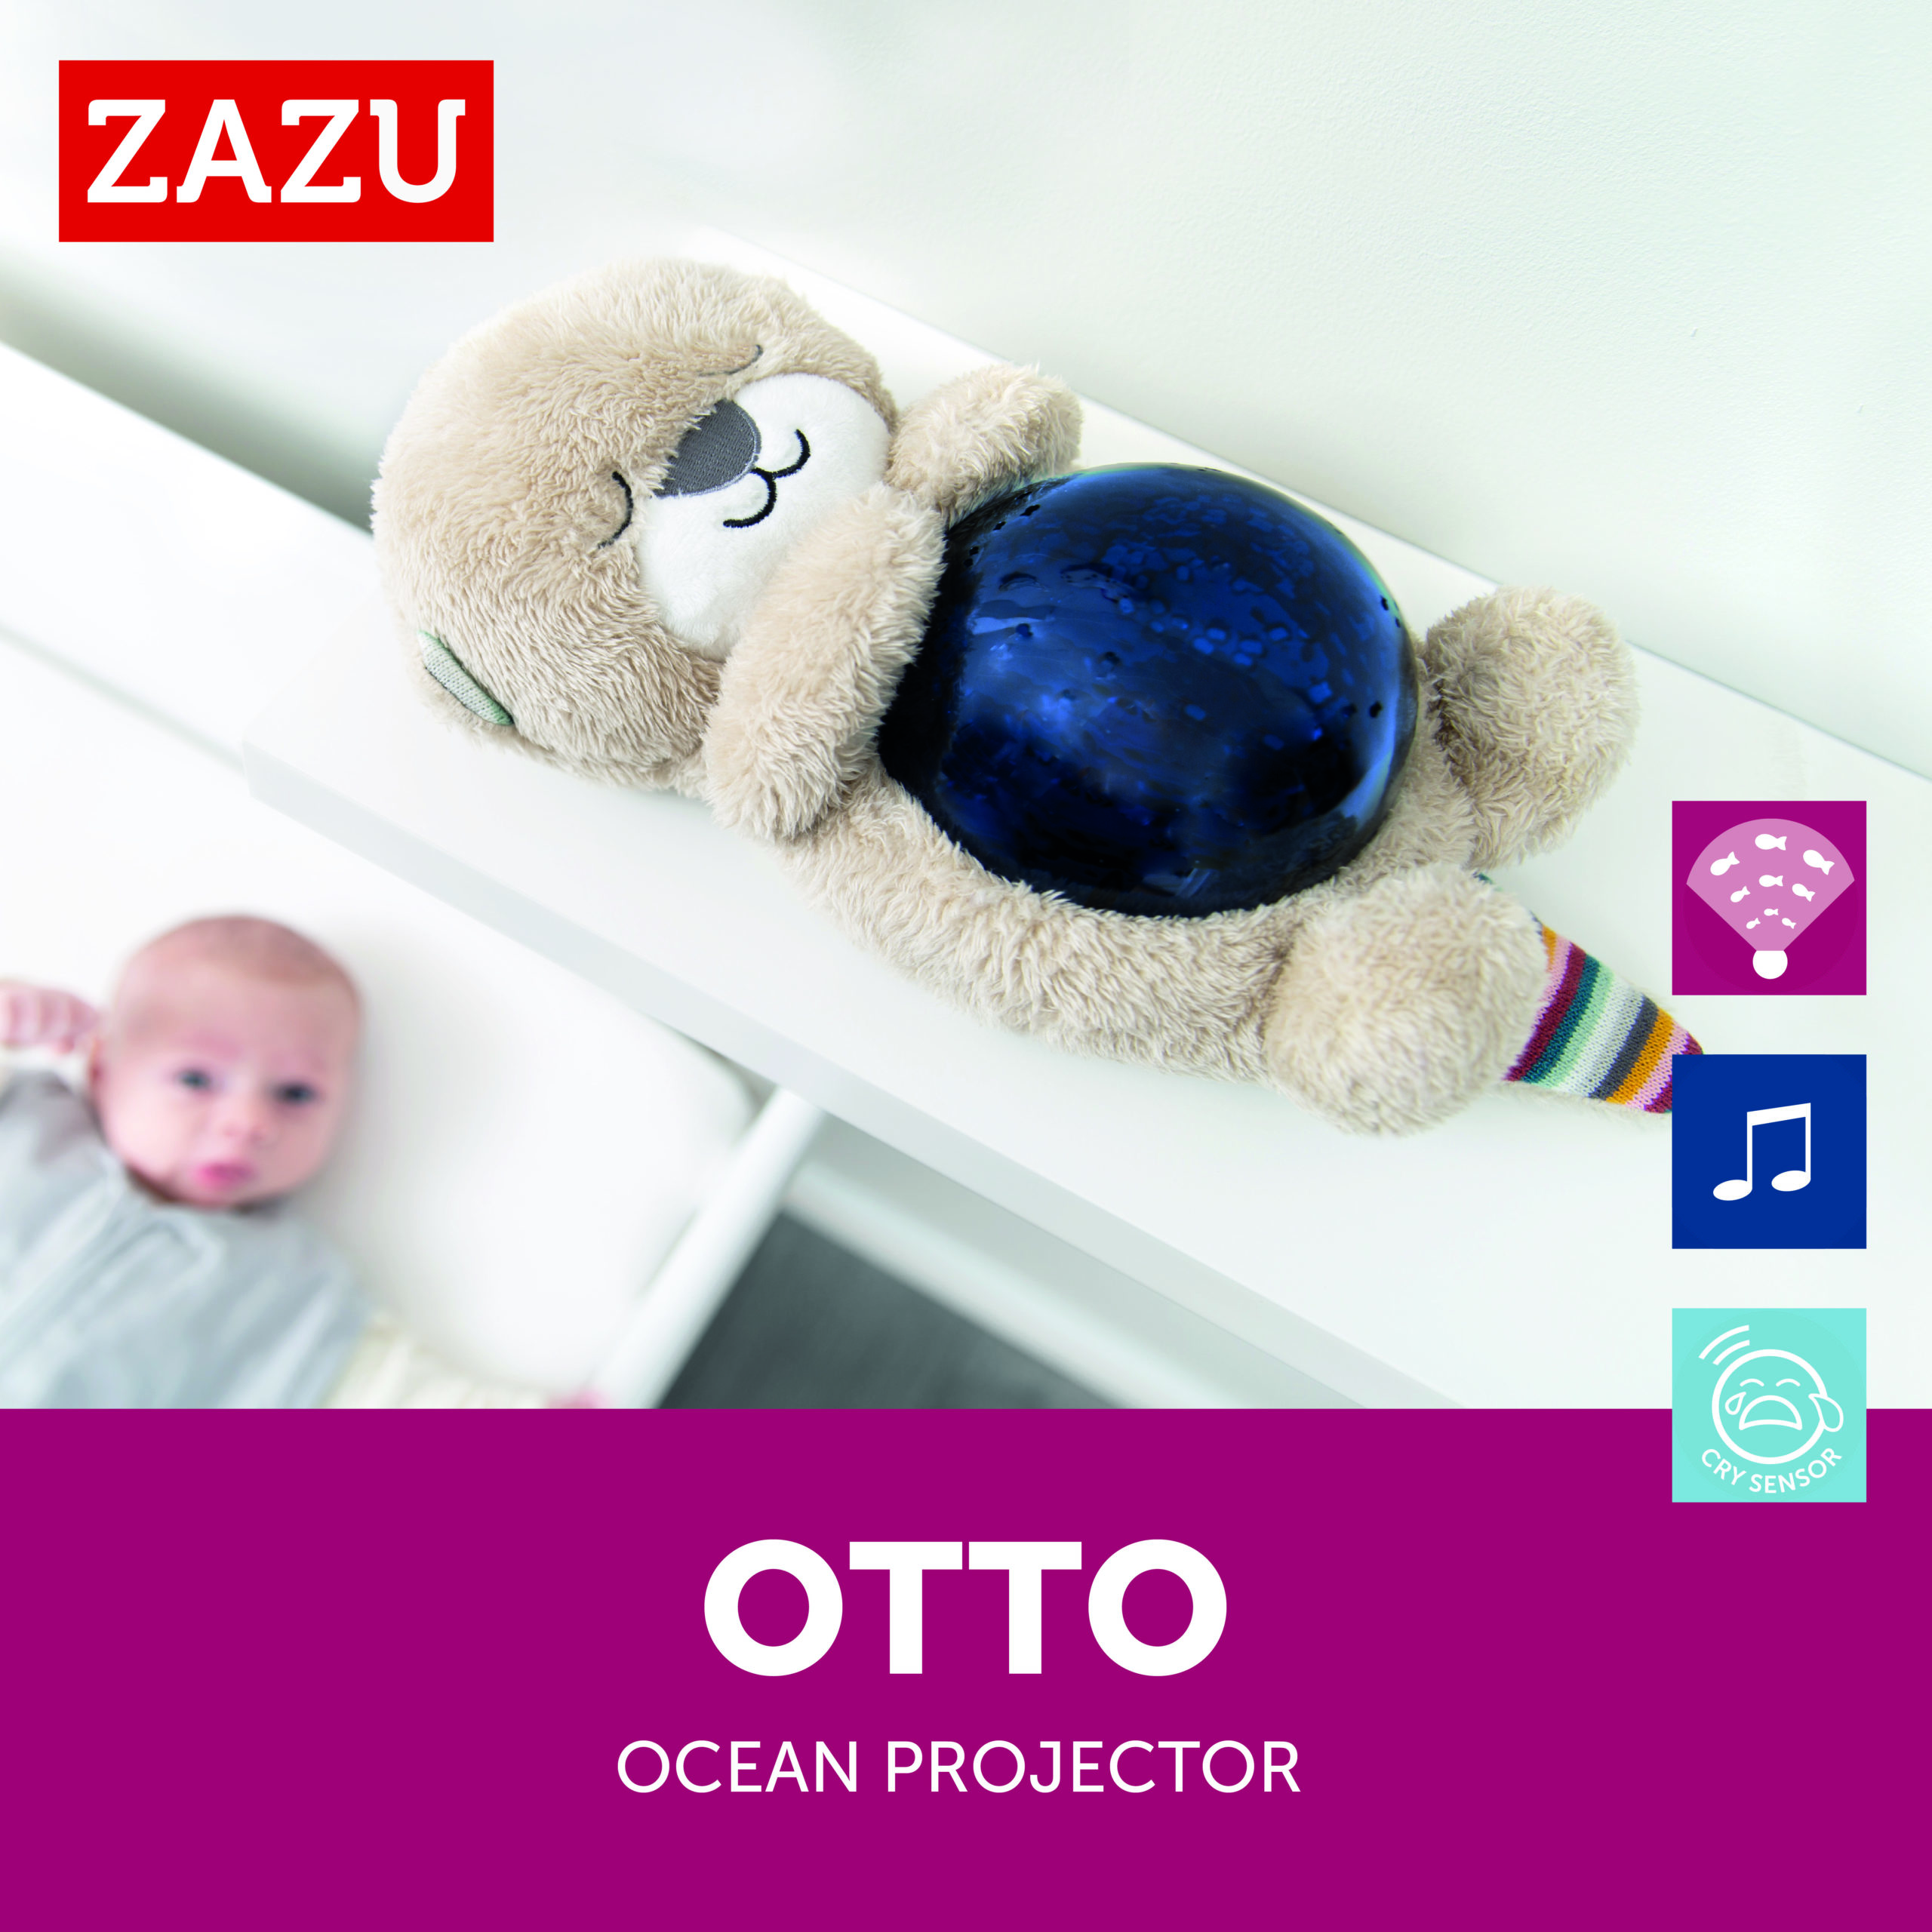 OTTO - Moving ocean projector